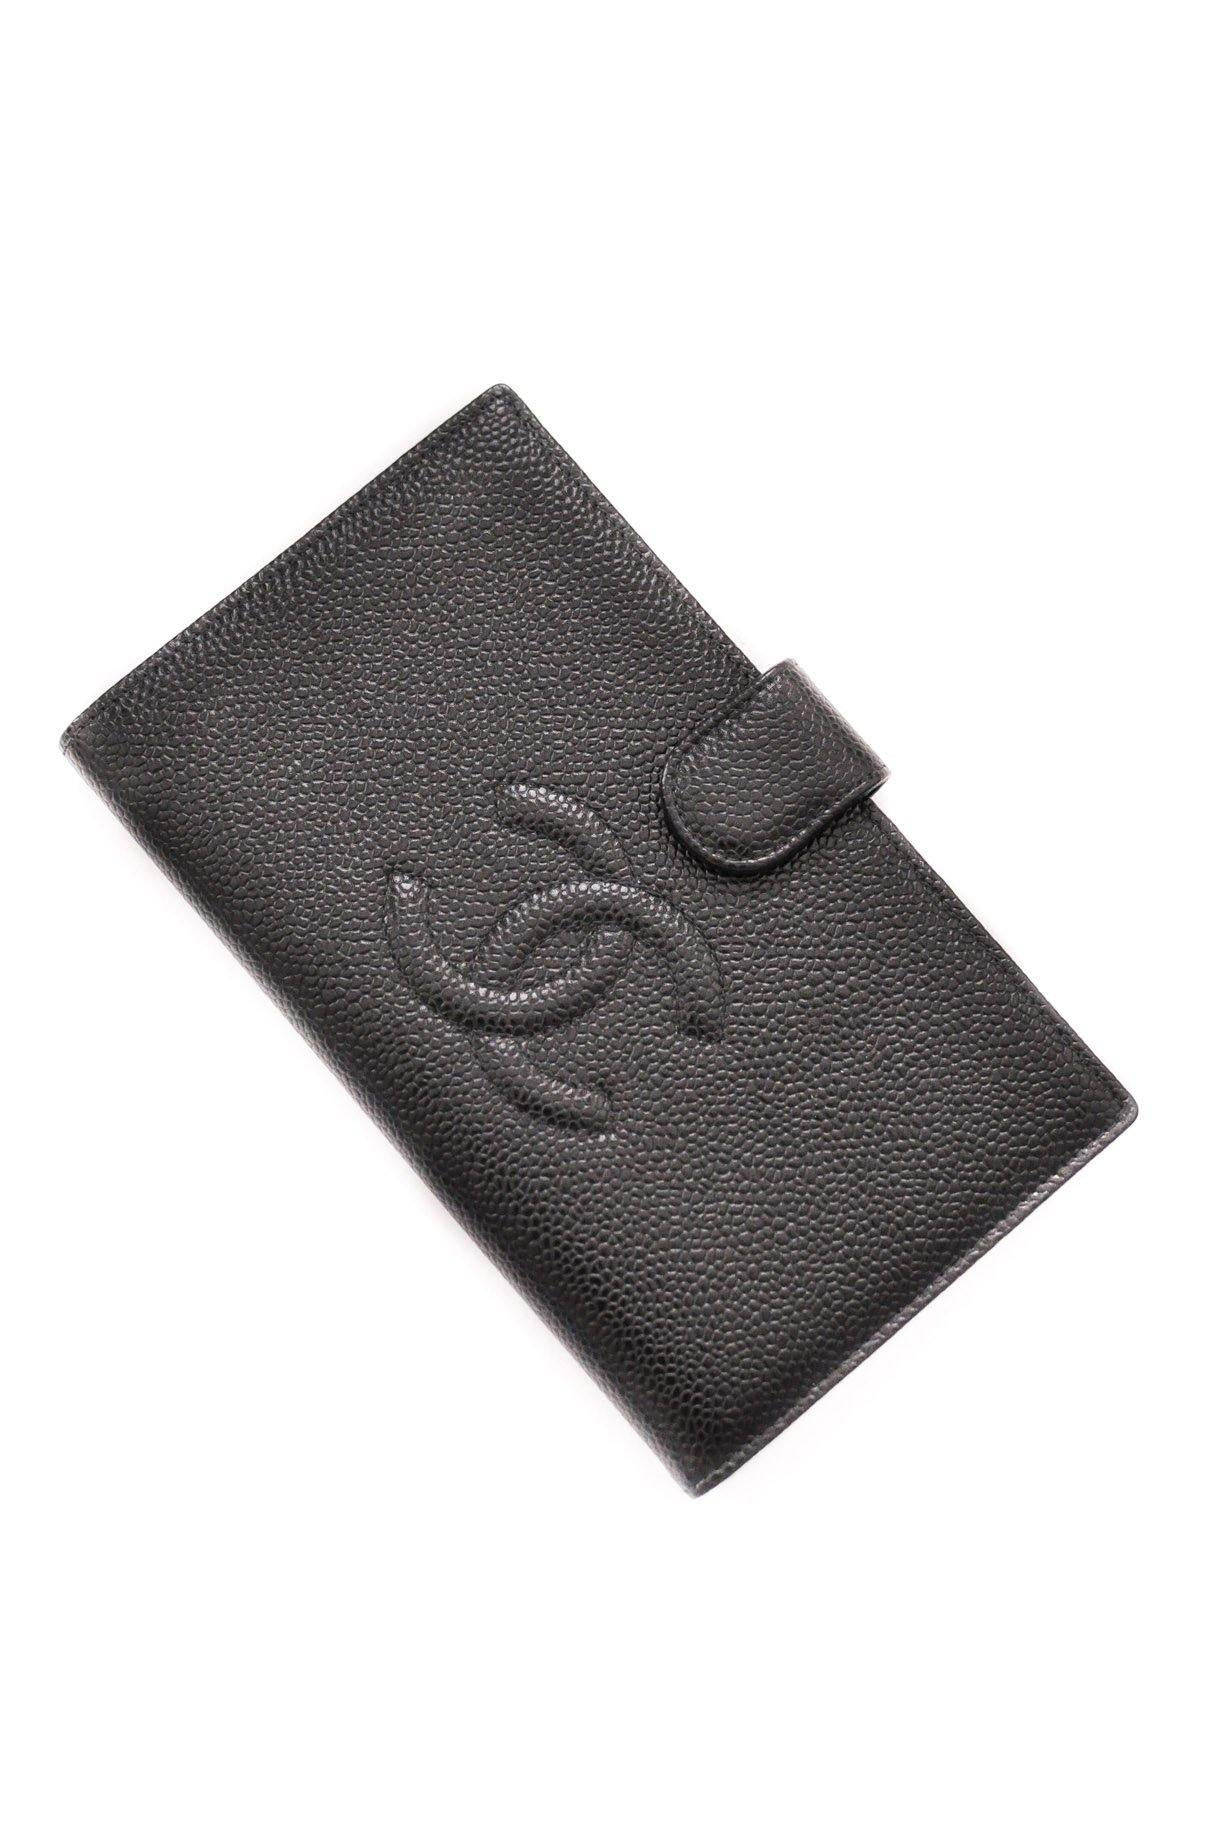 Chanel CC Black Folding Wallet